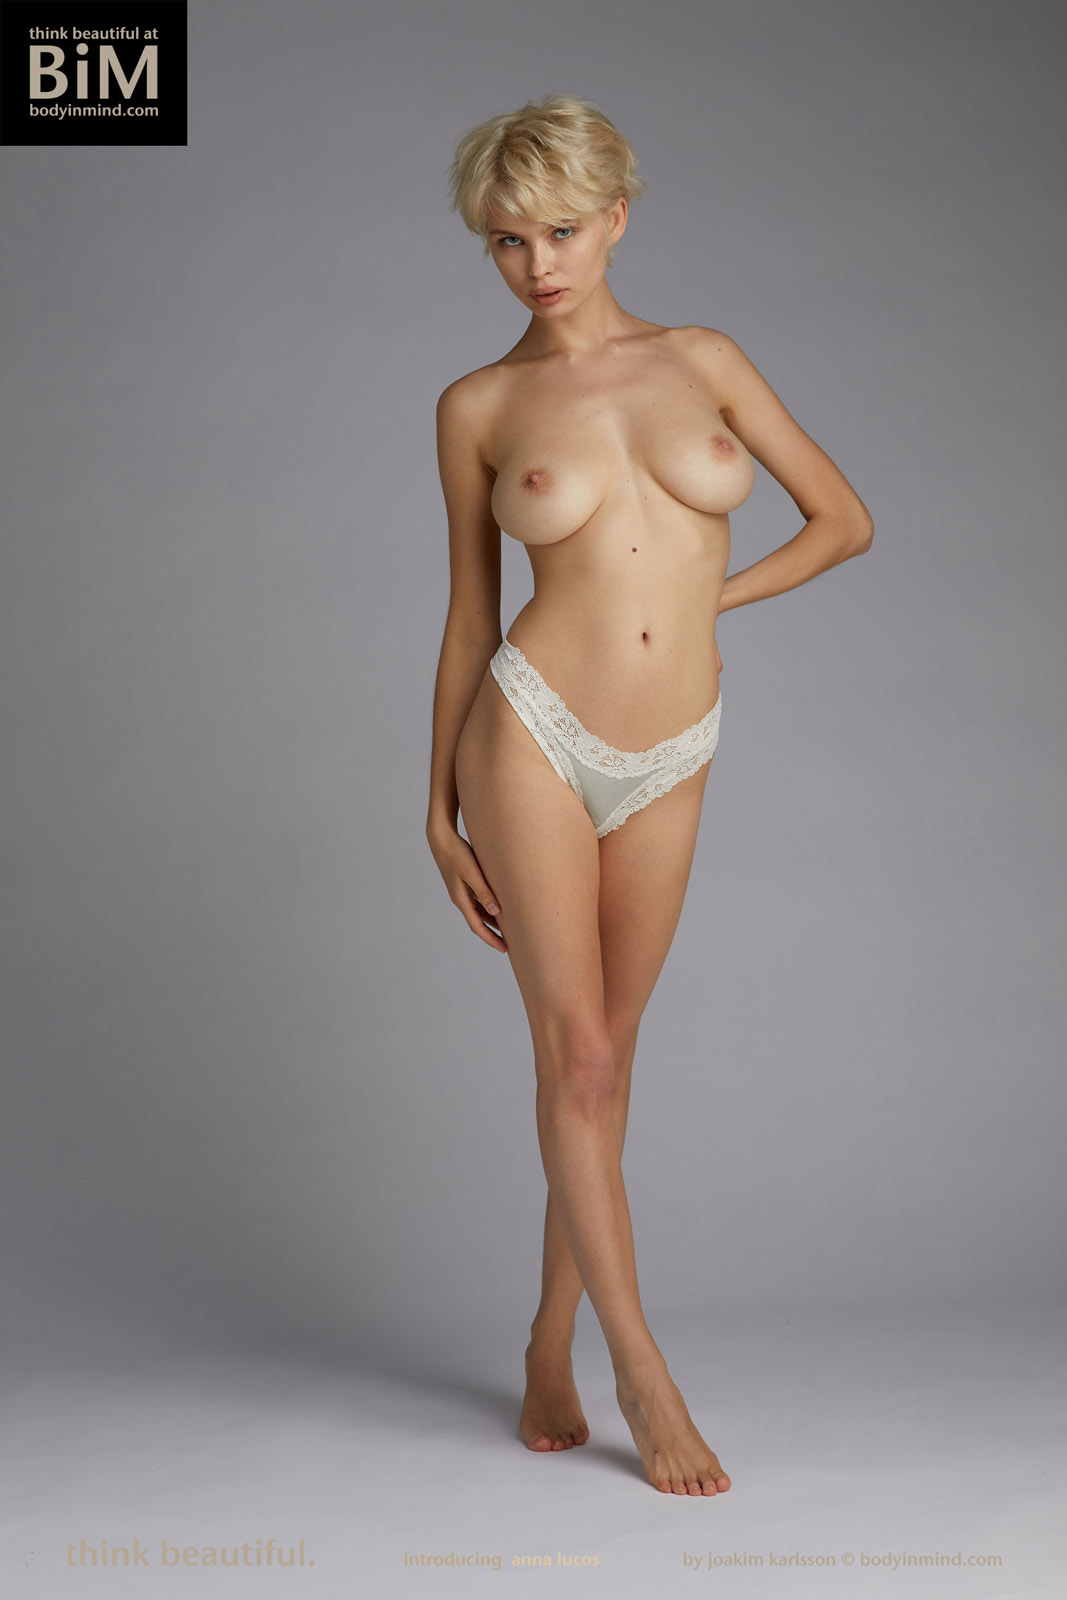 Anna Lucos Nude Body In Mind 6-1700